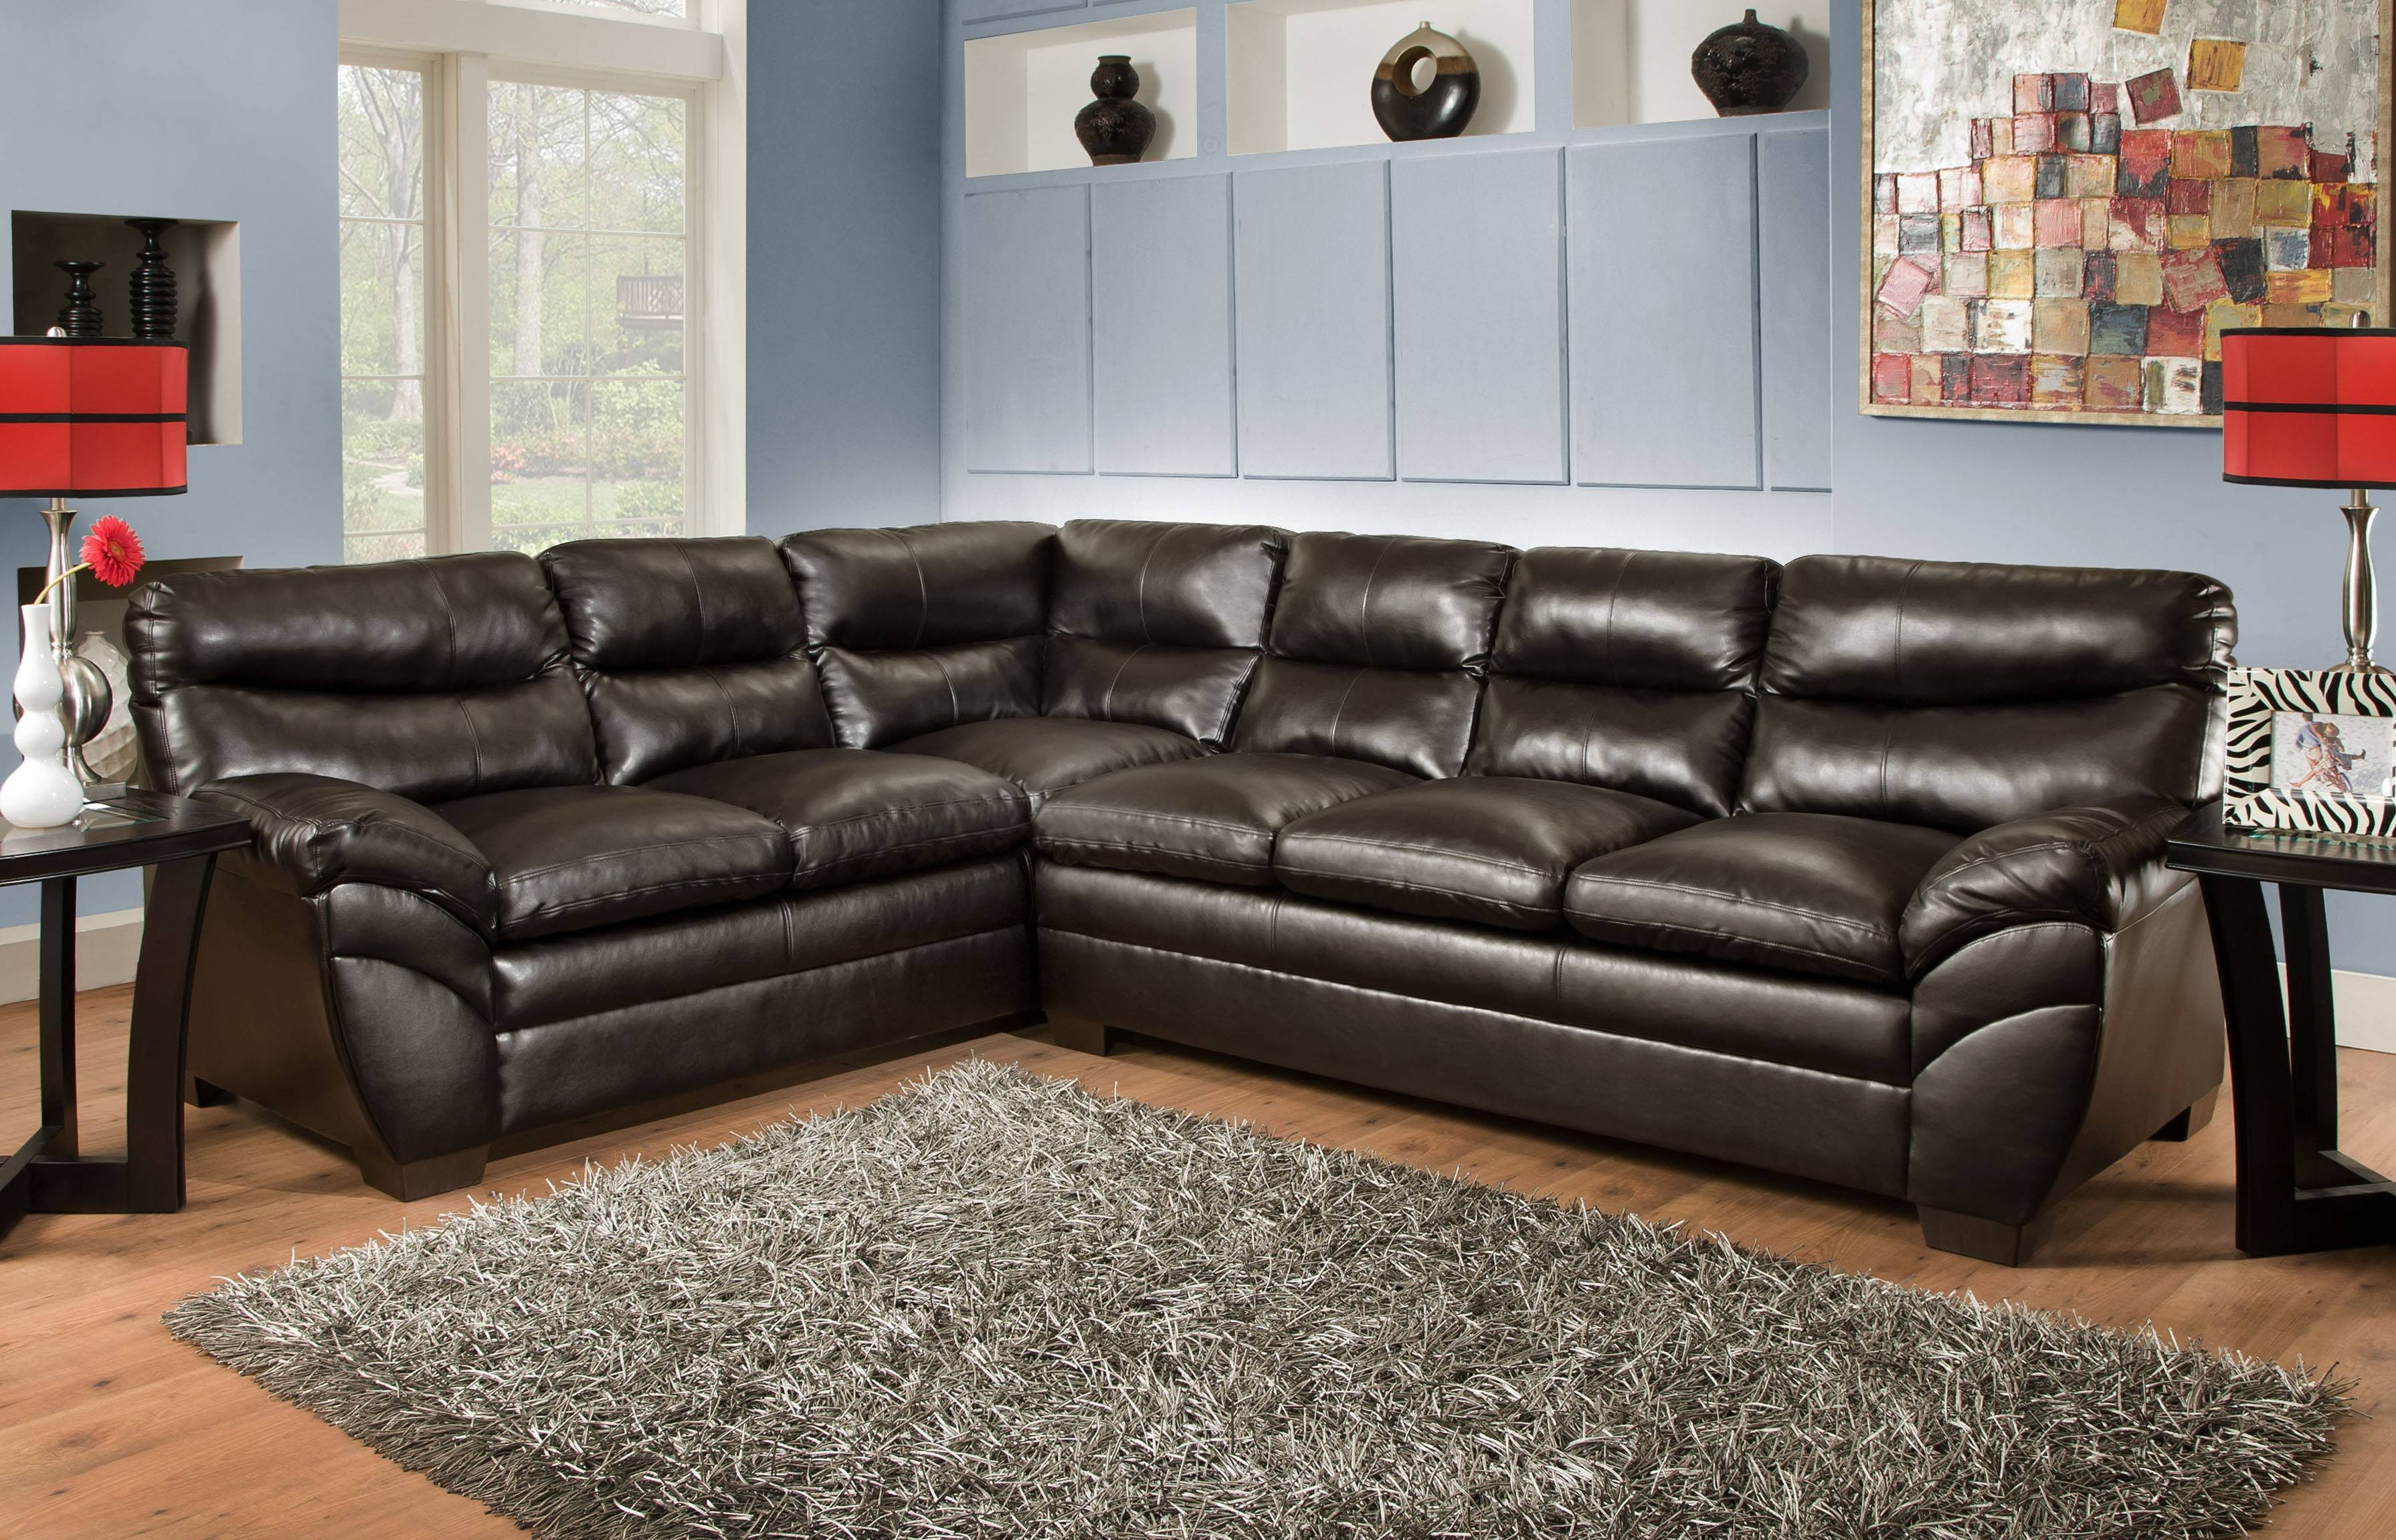 Epic Sectional Sofa Charleston Sc 27 About Remodel Comfy Sectional regarding Comfy Sectional Sofa (Image 11 of 30)